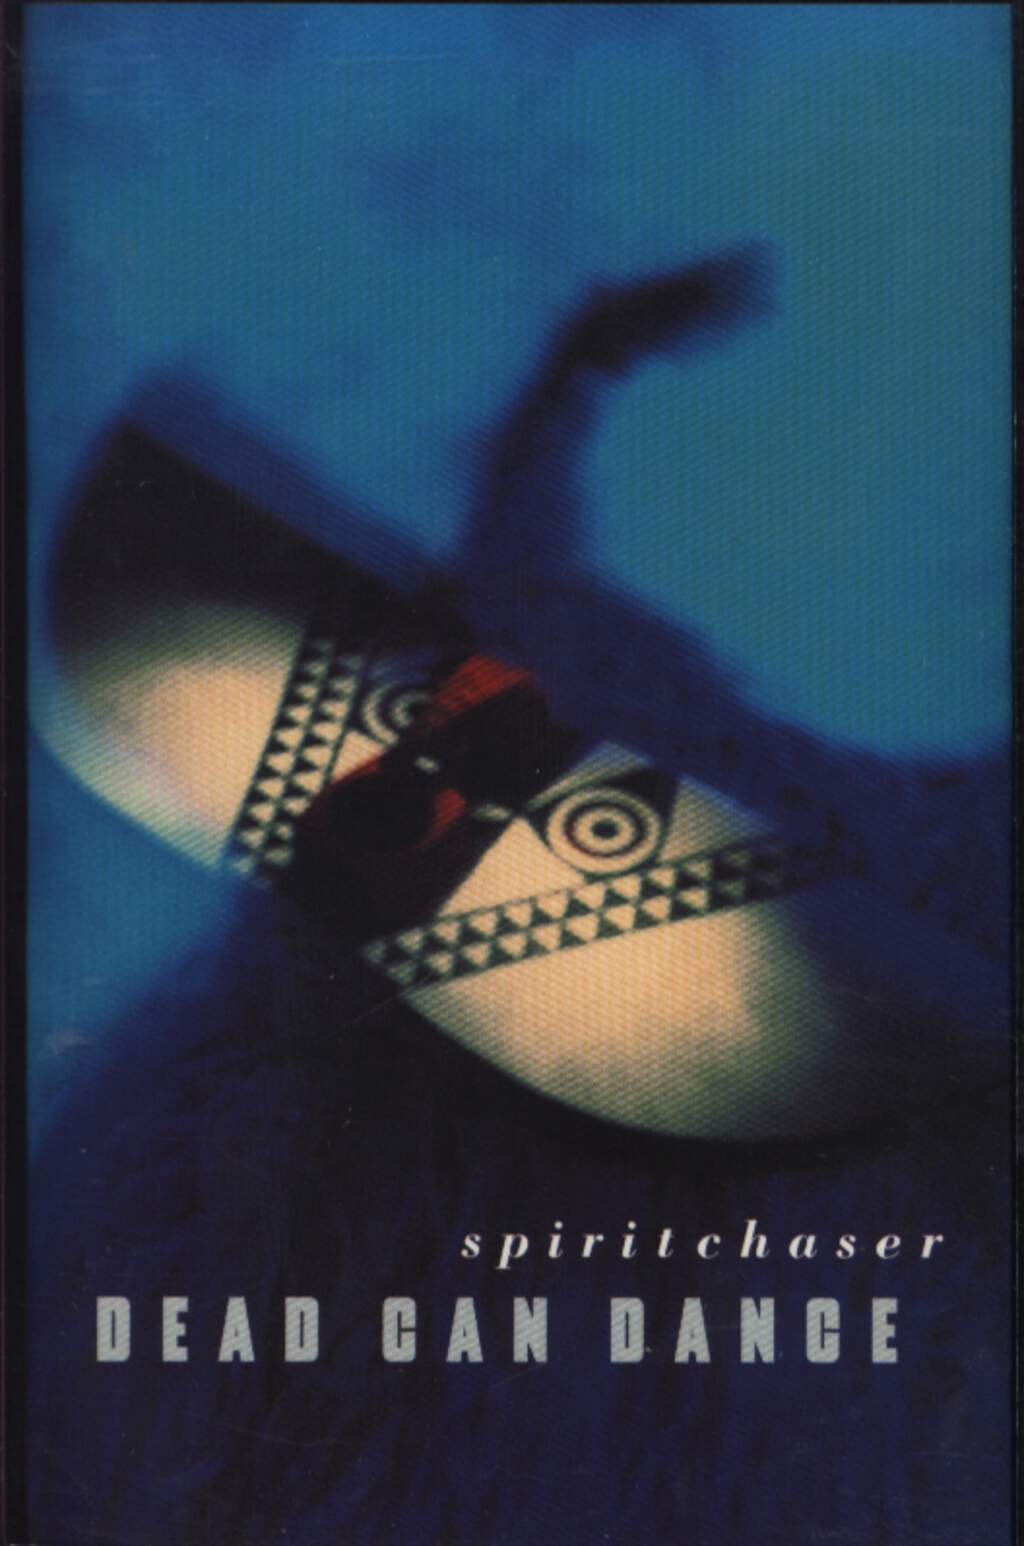 Dead Can Dance: Spiritchaser, Compact Cassette